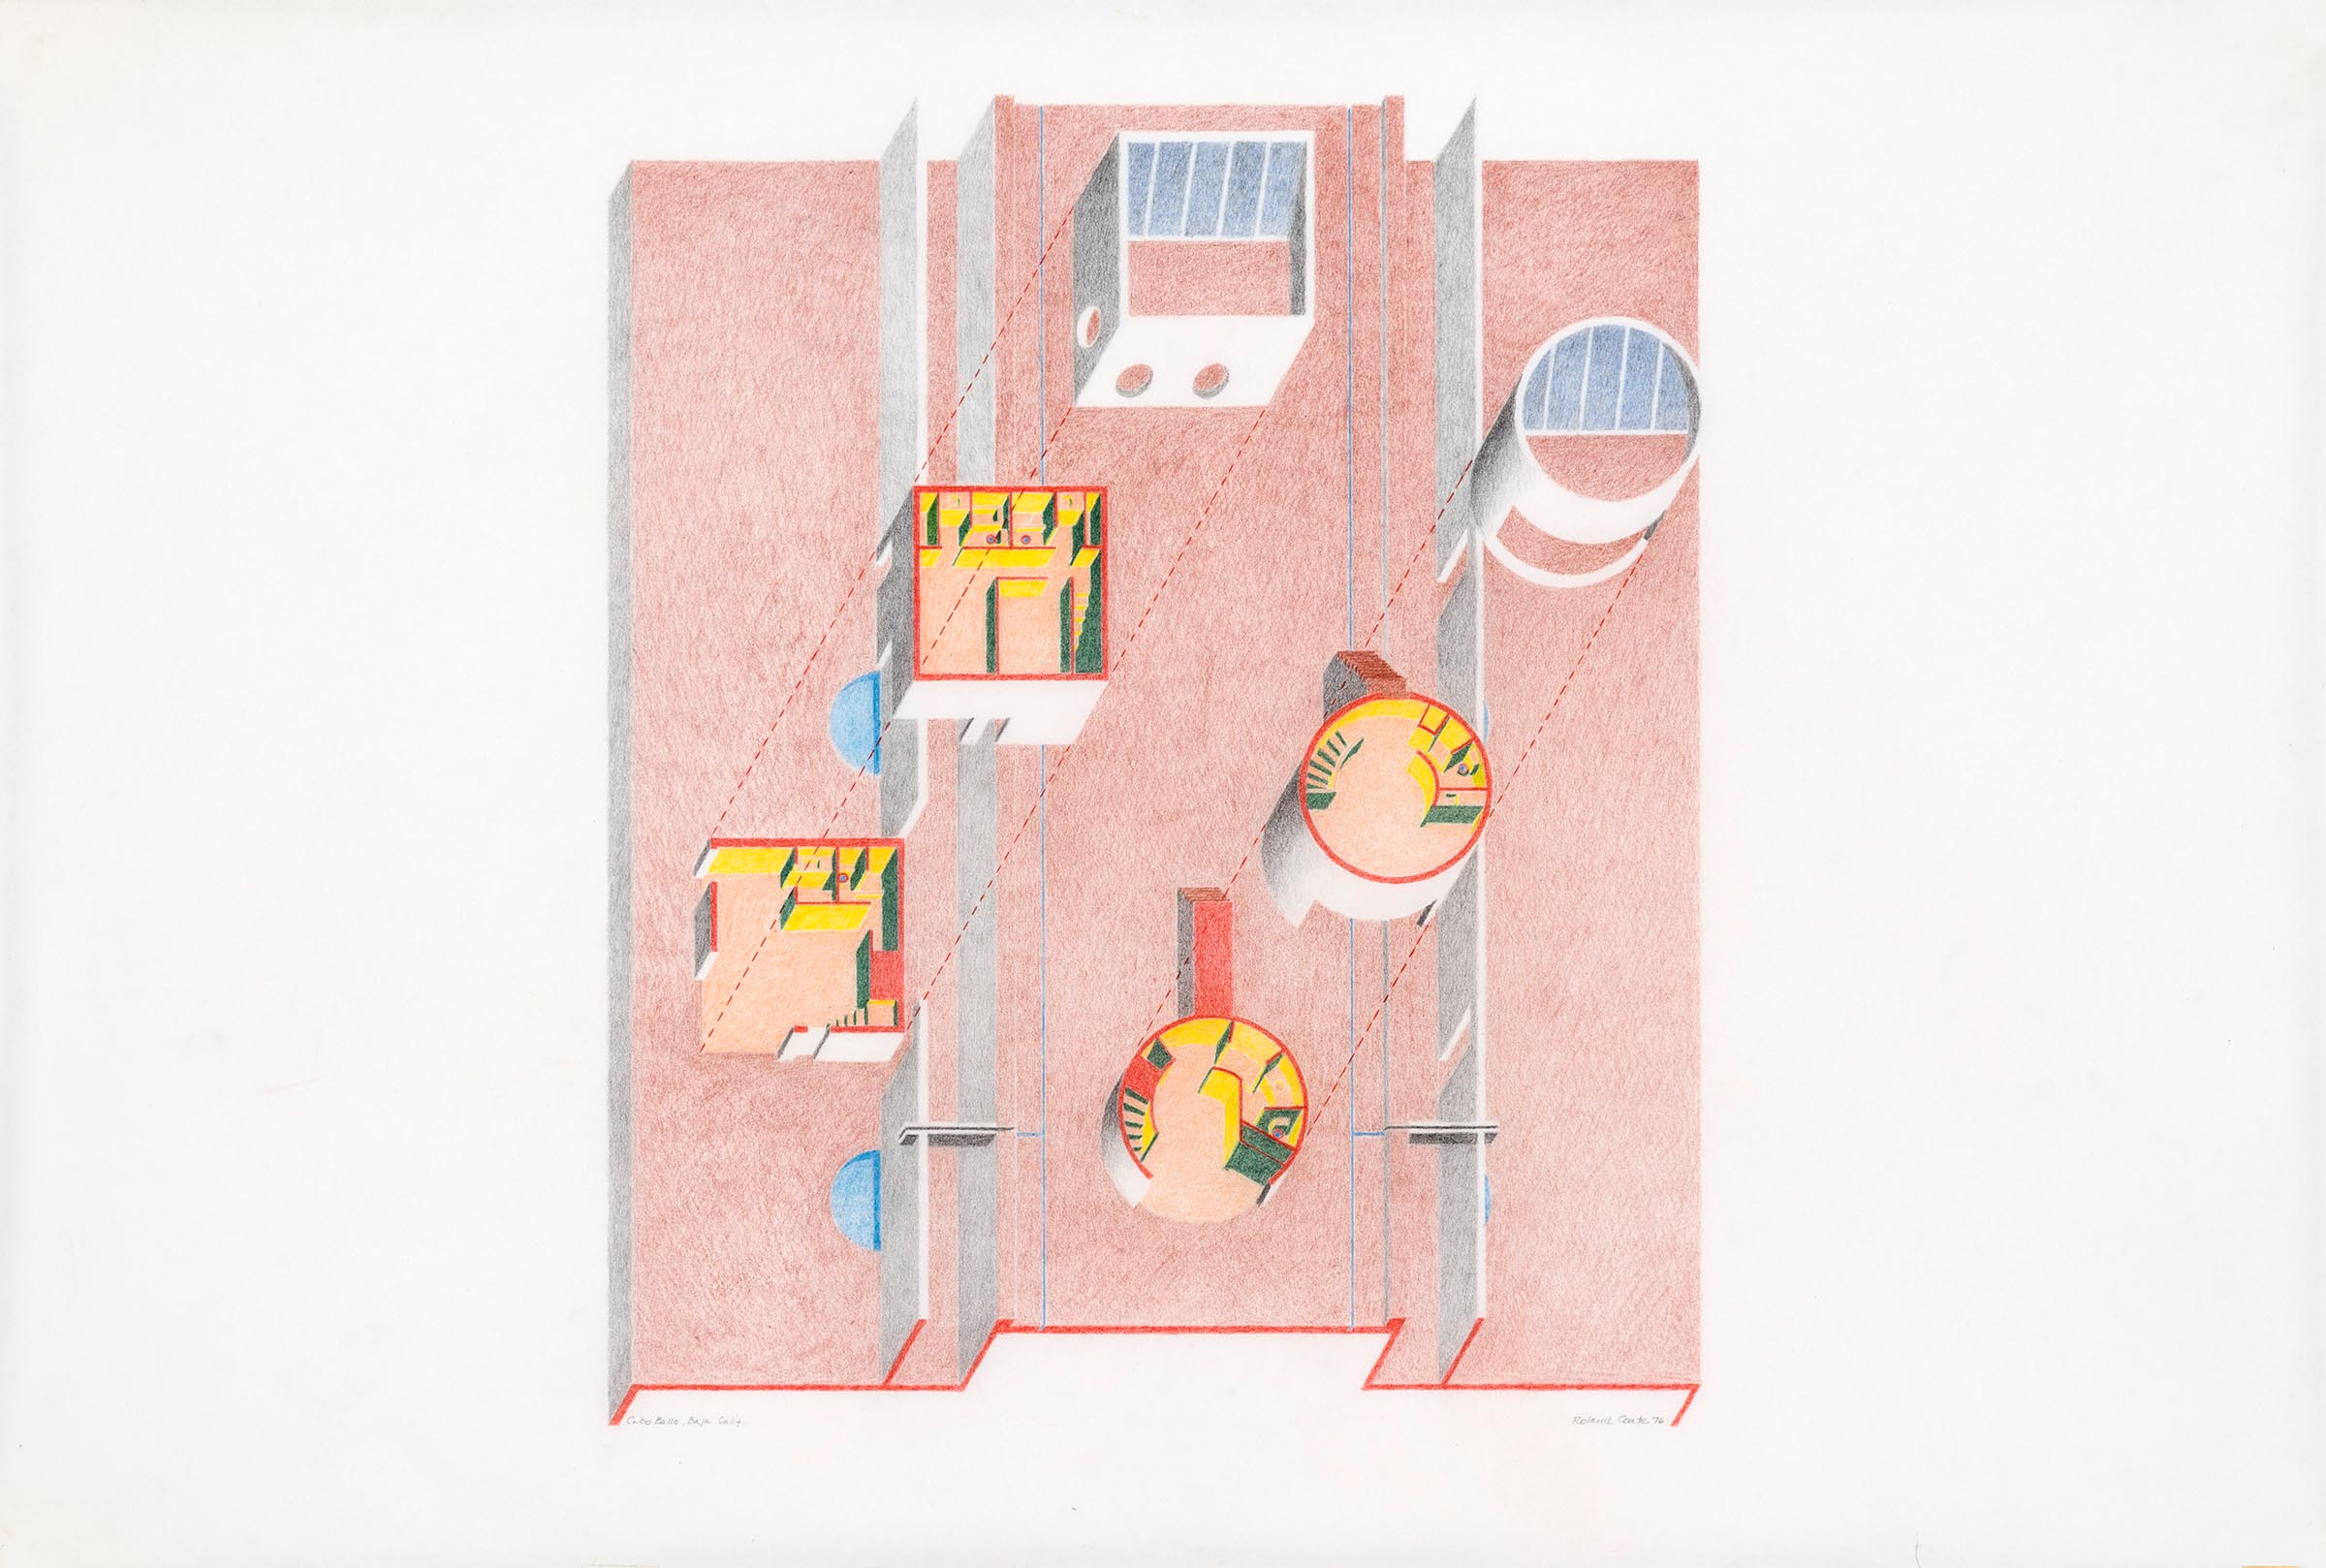 Explode axonometric, colored pencil on vellum. Collection of the architect. Photo: Josh White